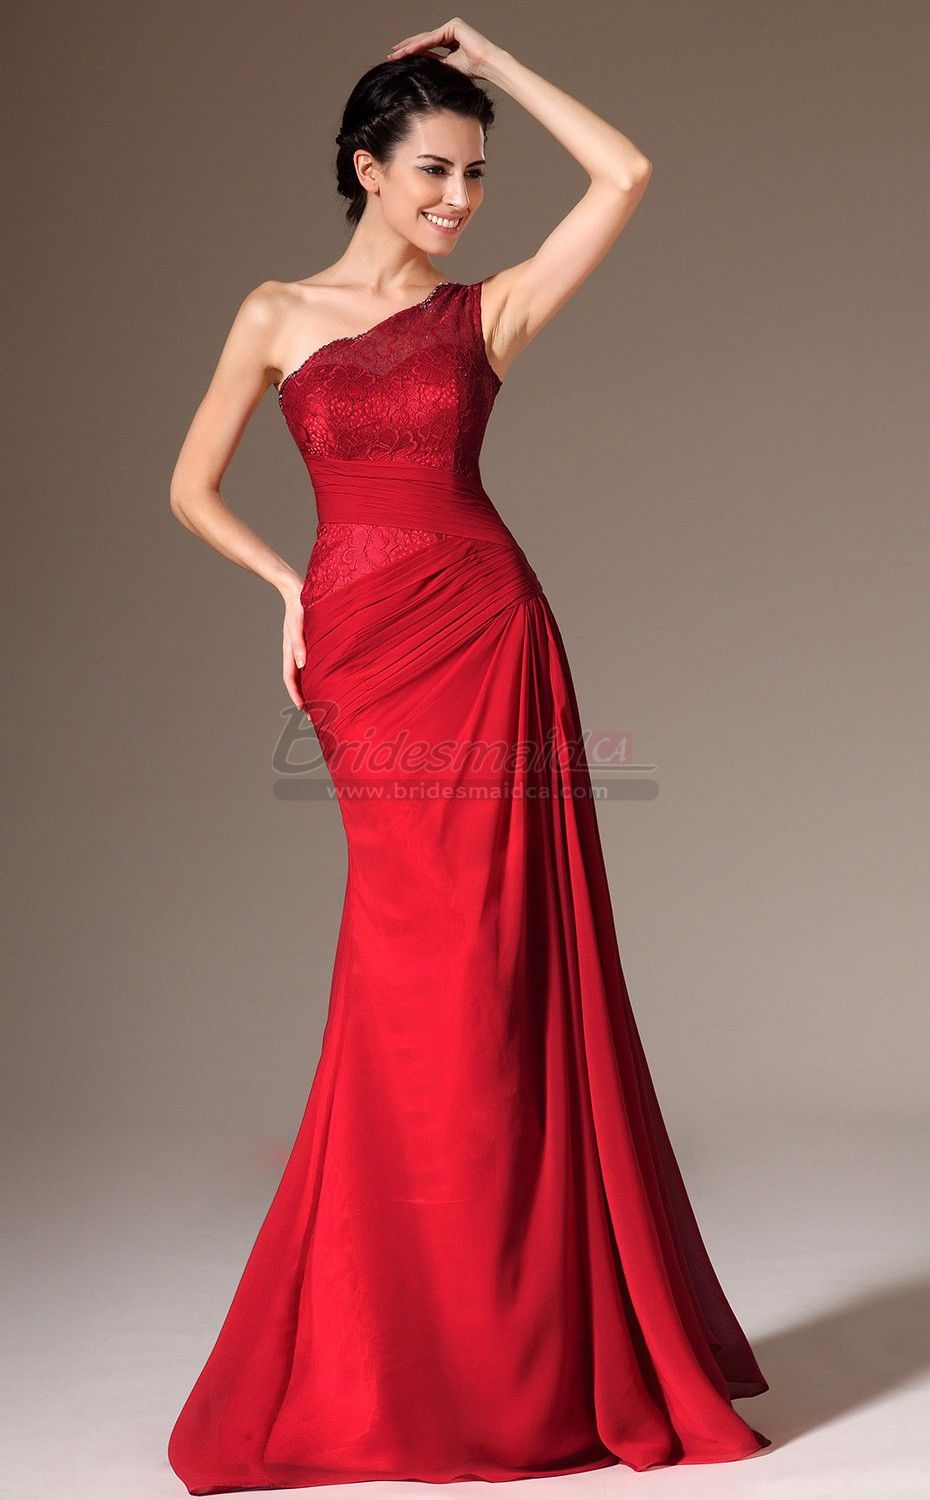 Red long chiffon and lace one shoulder mermaid bridesmaid dress jt red long chiffon and lace one shoulder mermaid bridesmaid dress jt ca1350 ombrellifo Choice Image